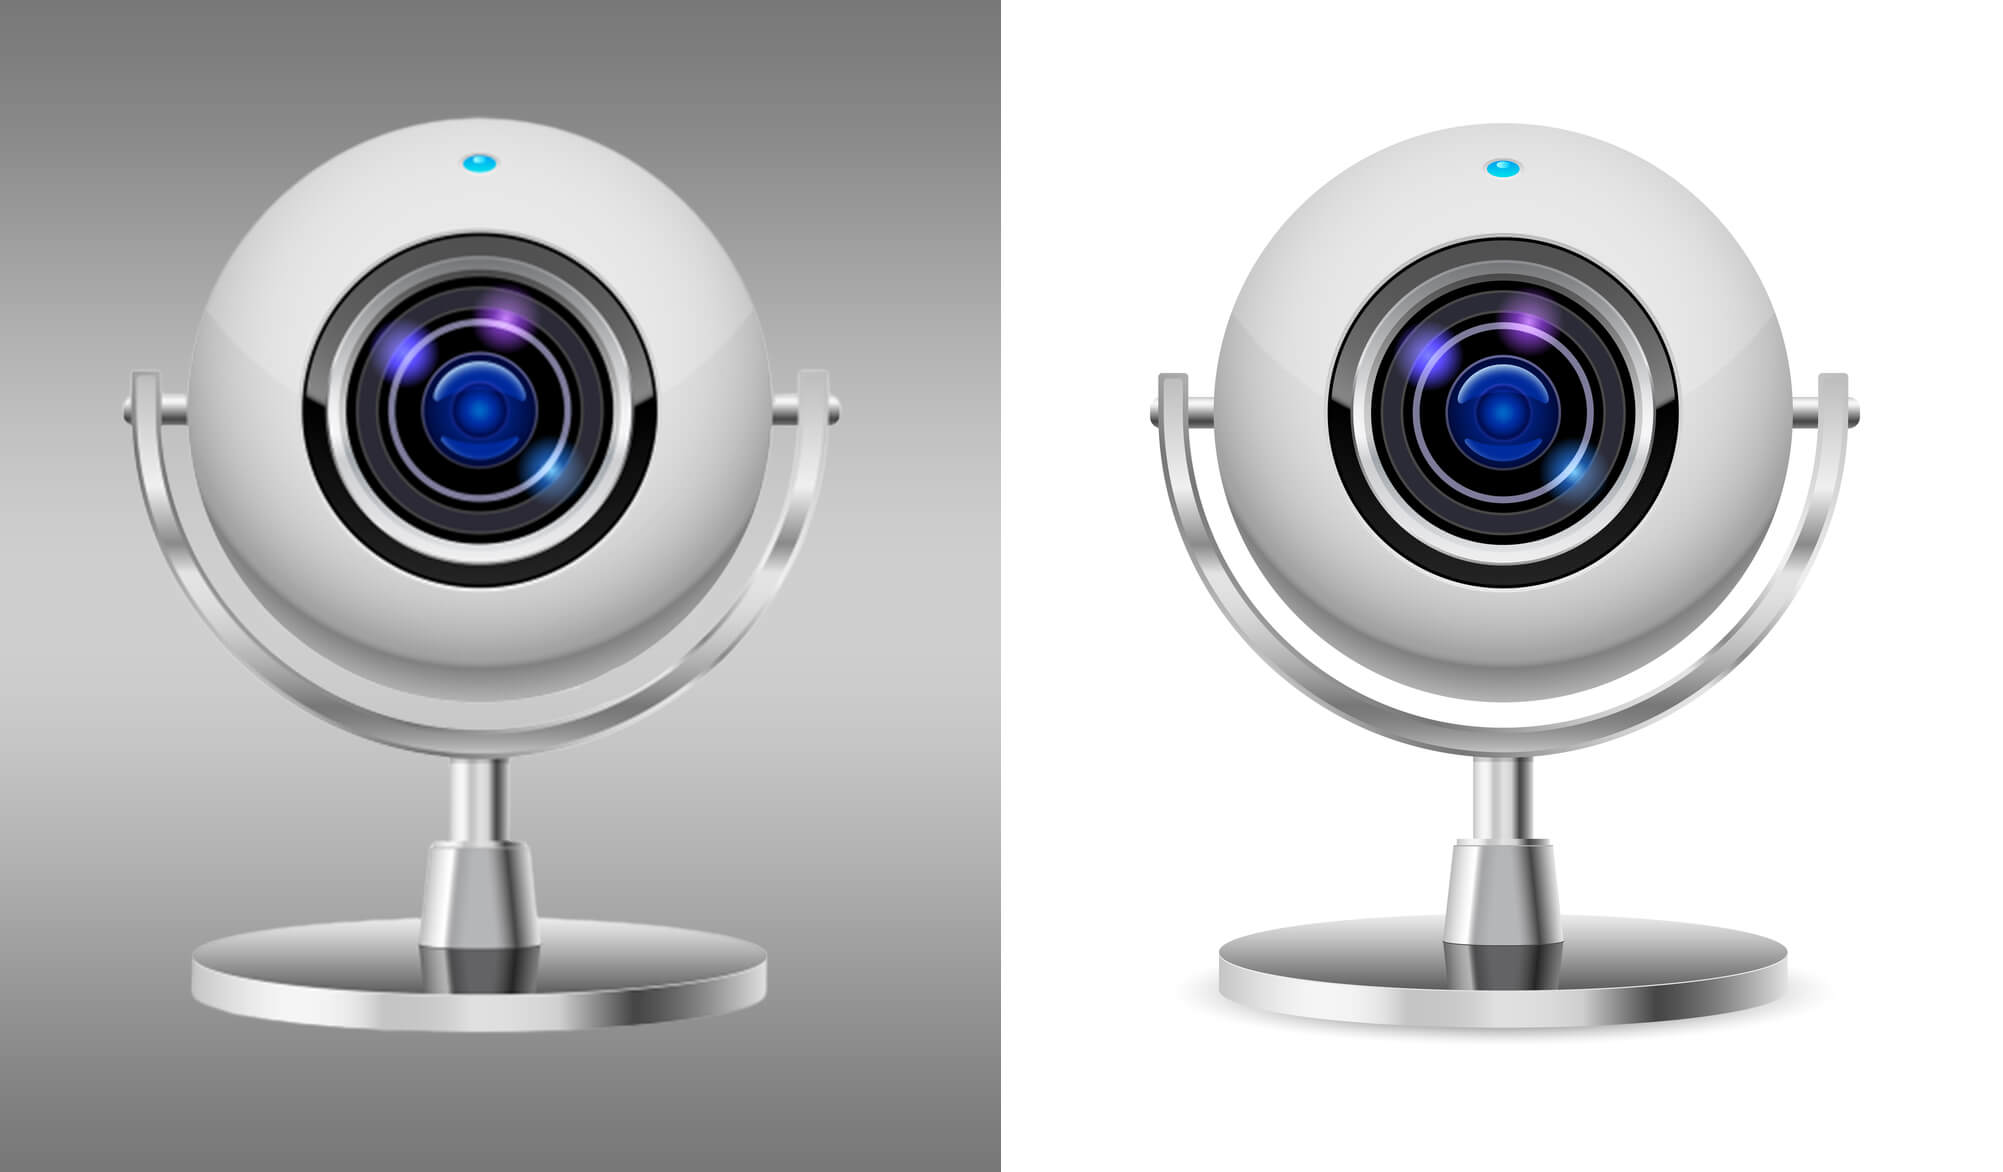 webcam image clipping path service